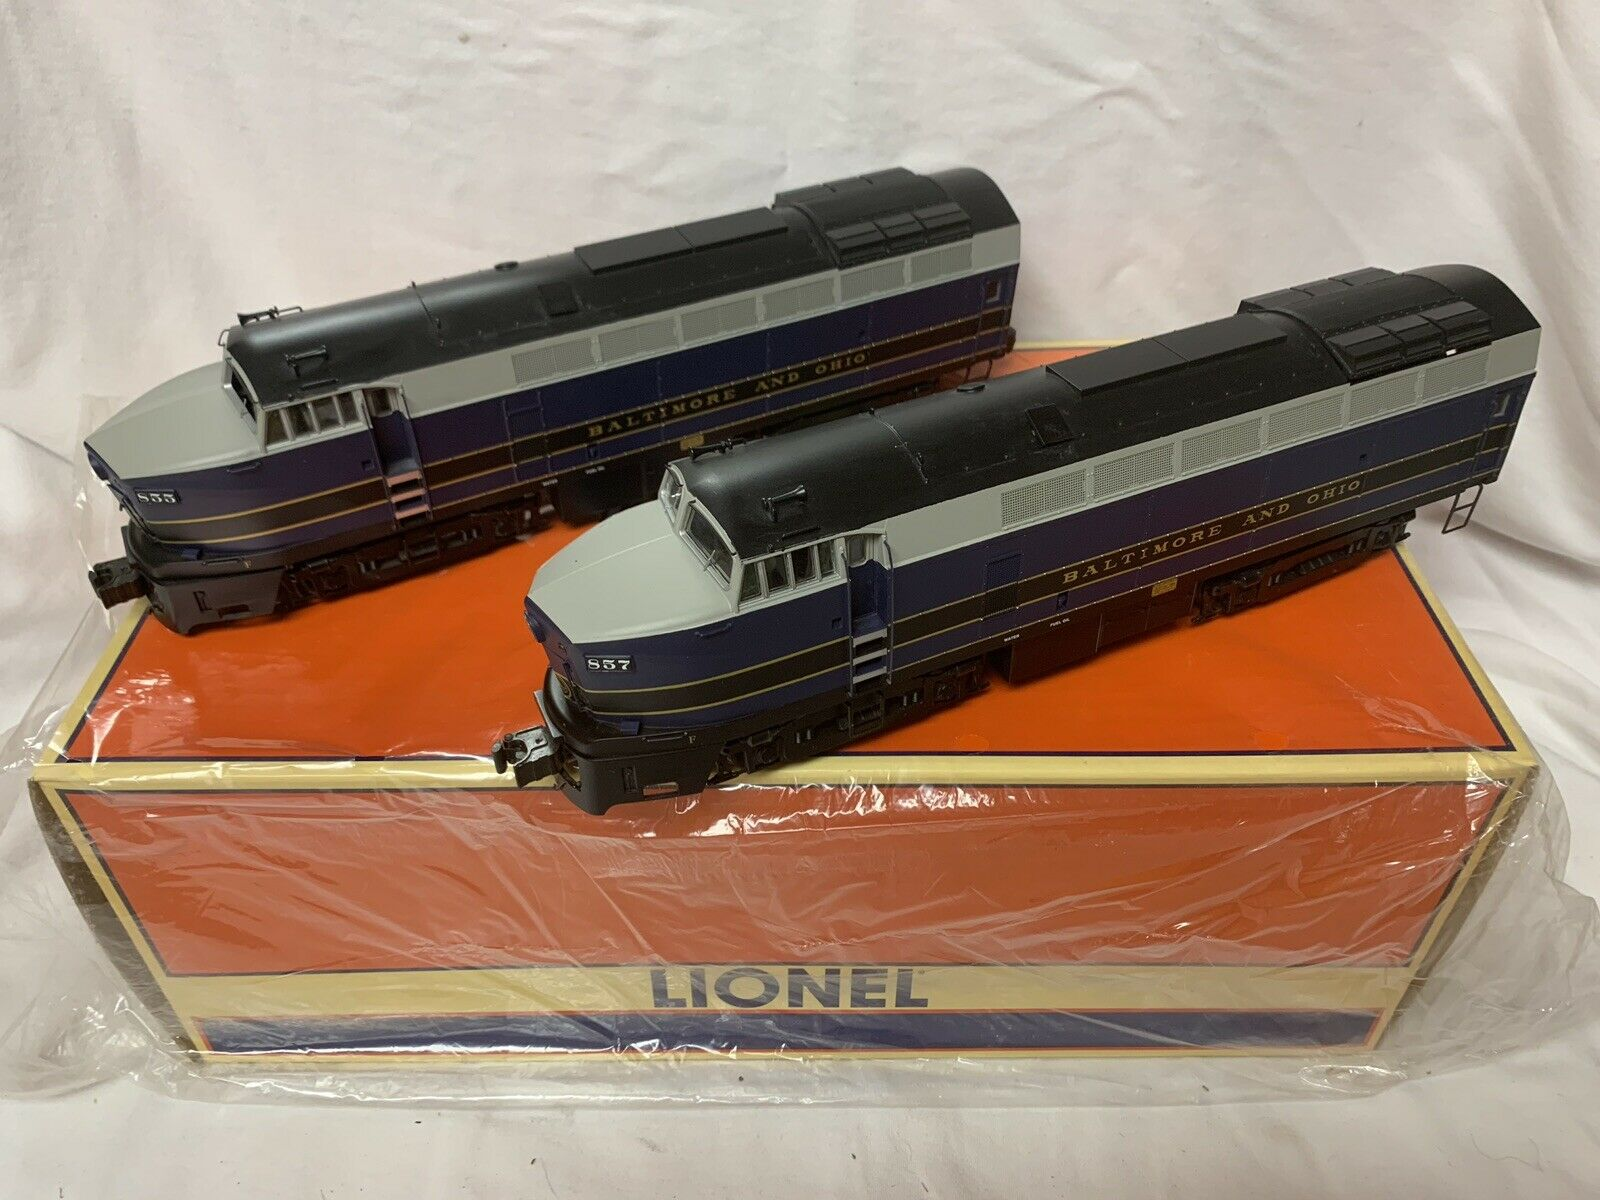 Motor diésel Lionel Legacy Baltimore & & & Ohio RF - 16 sharknose mth Sharks 8b3